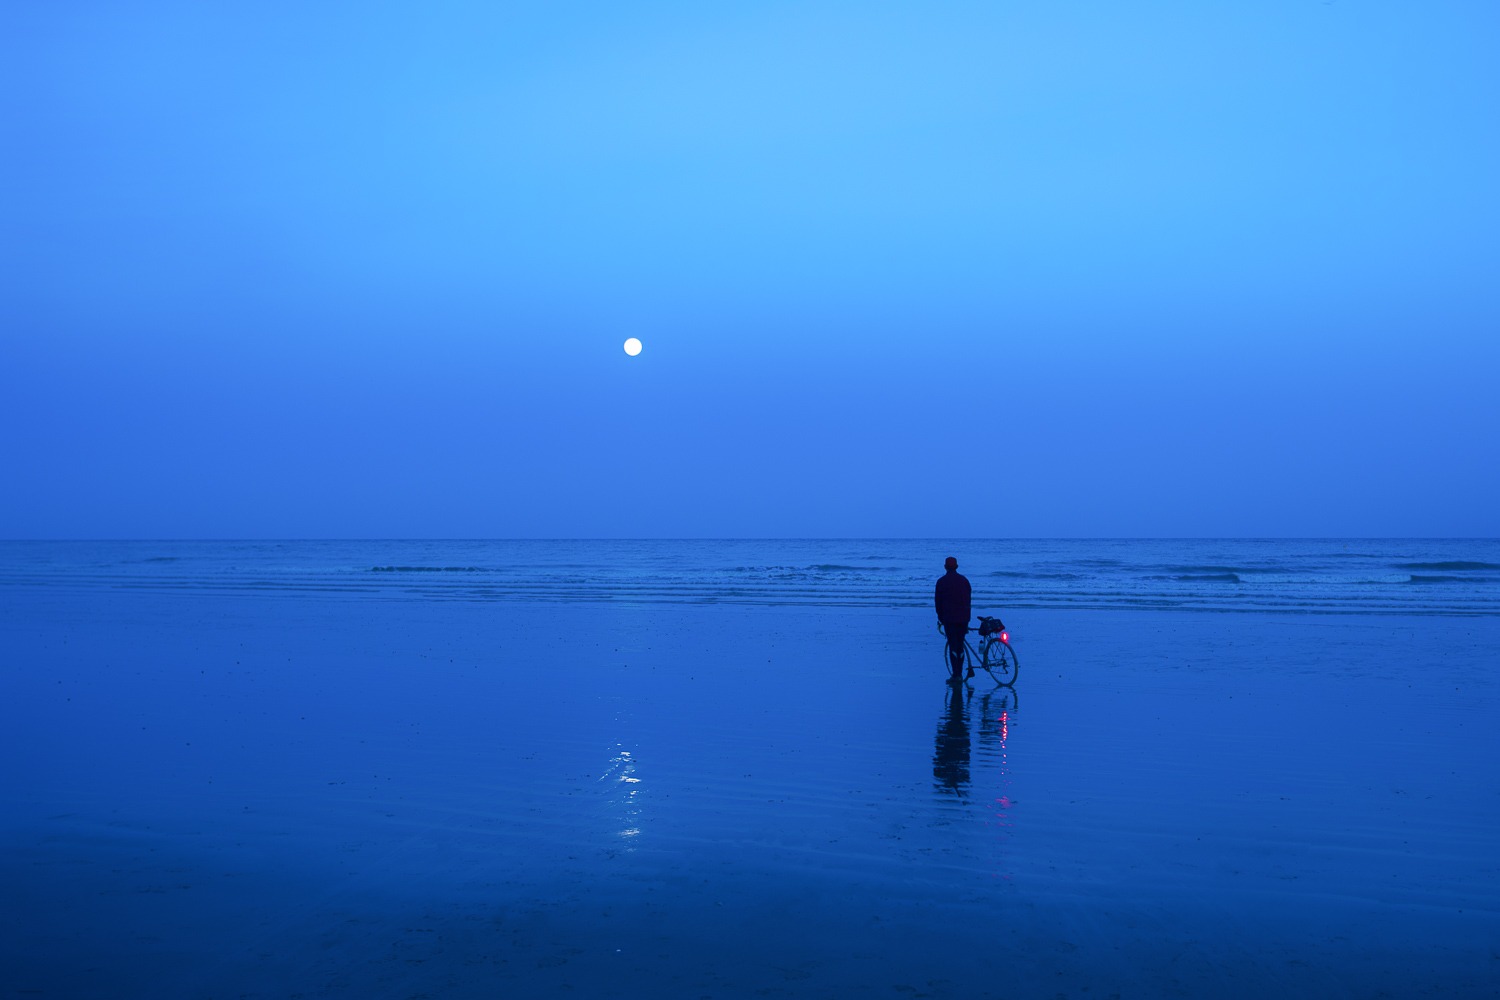 Silhouette of man with bicycle gazing at full moon on a shimmering beach